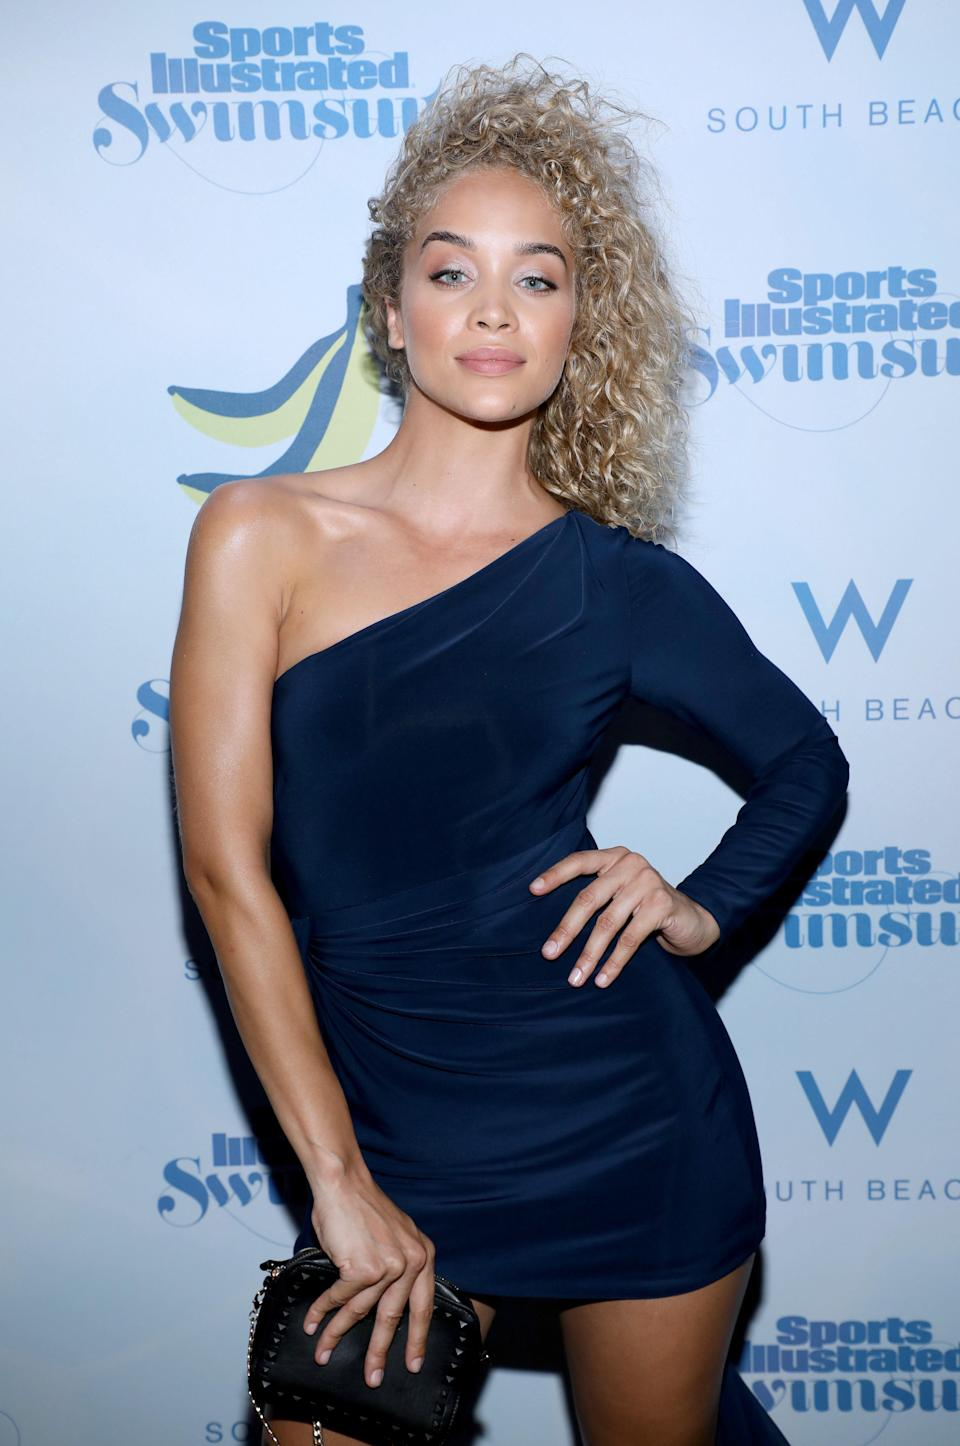 Ashy blond doesn't have to be superlight, as demonstrated by model Jasmine Sanders. The cooler shade looks amazing with her natural curls.